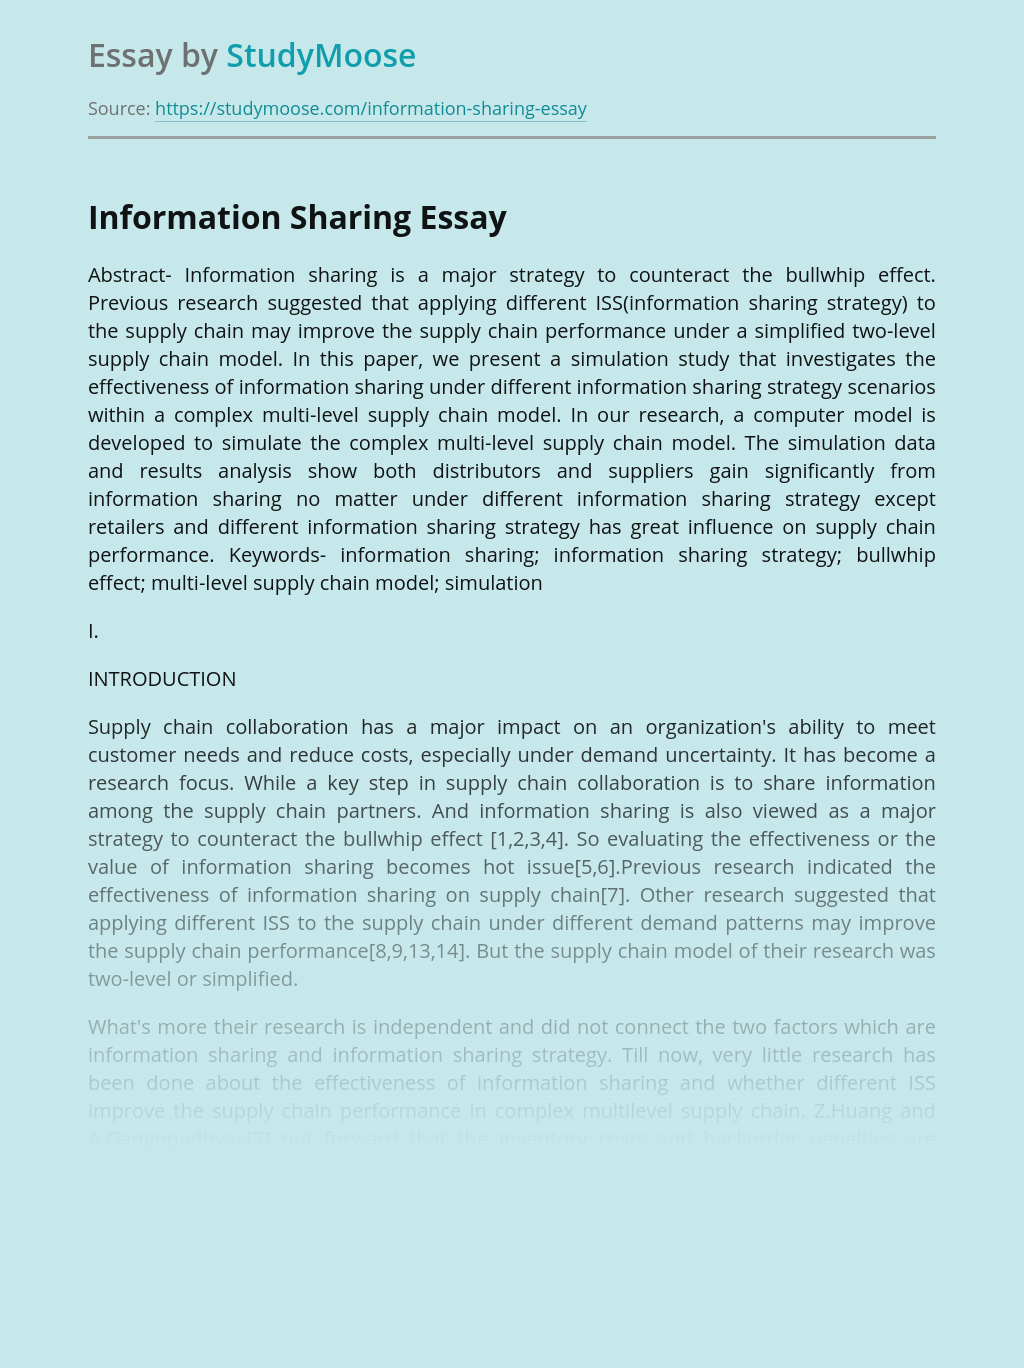 Information Sharing Strategy in Management